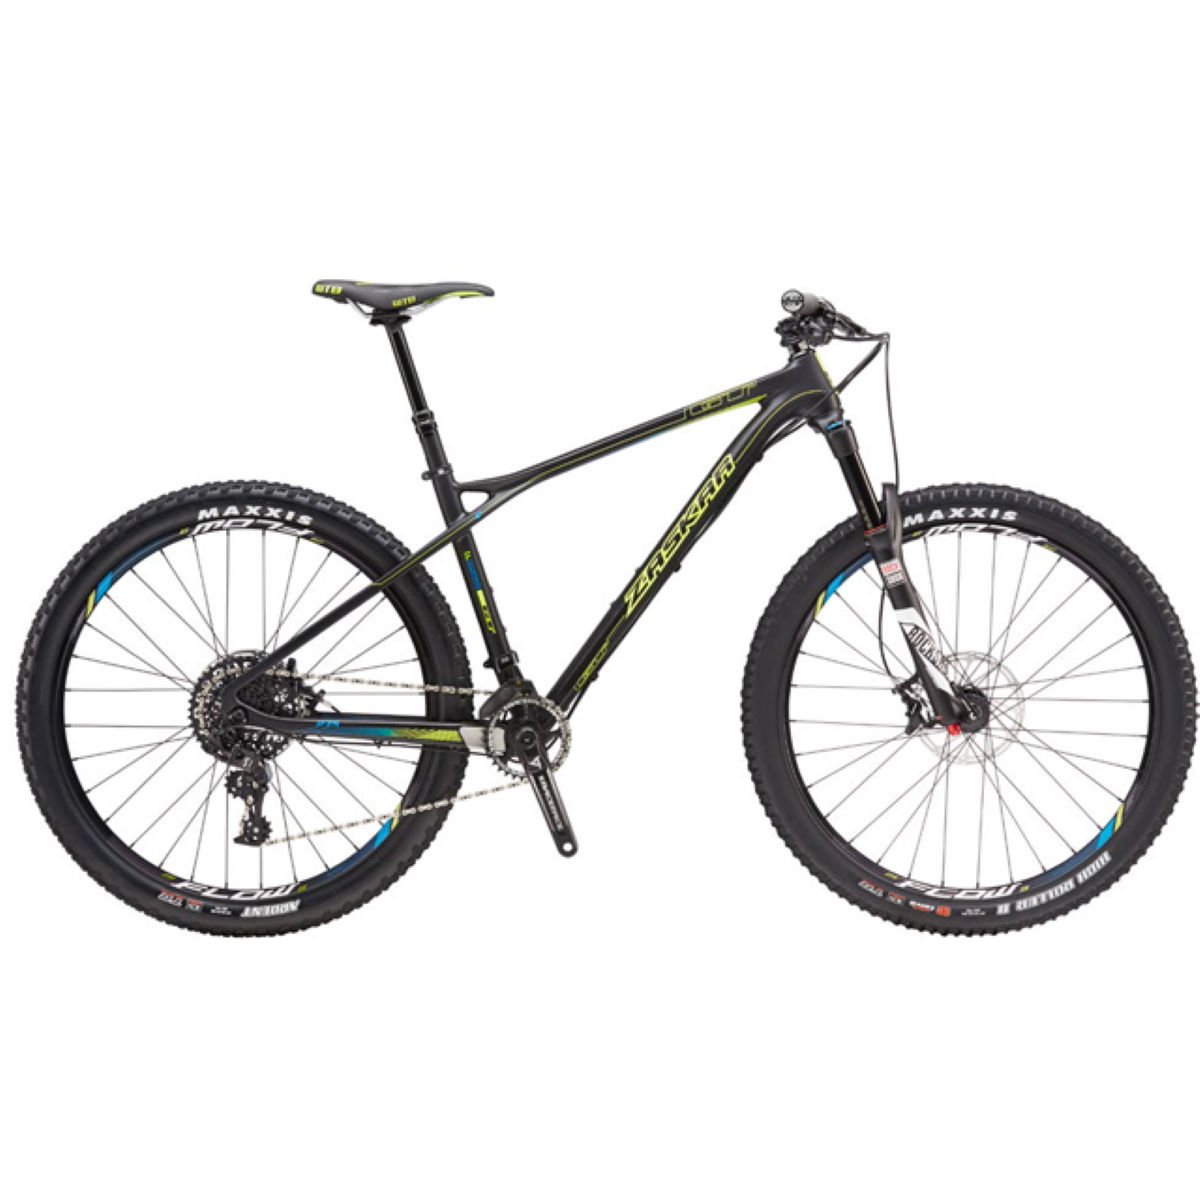 GT Zaskar Carbon LTD (2016) Mountain Bike - M Stock Bike Raw VTT semi-rigides